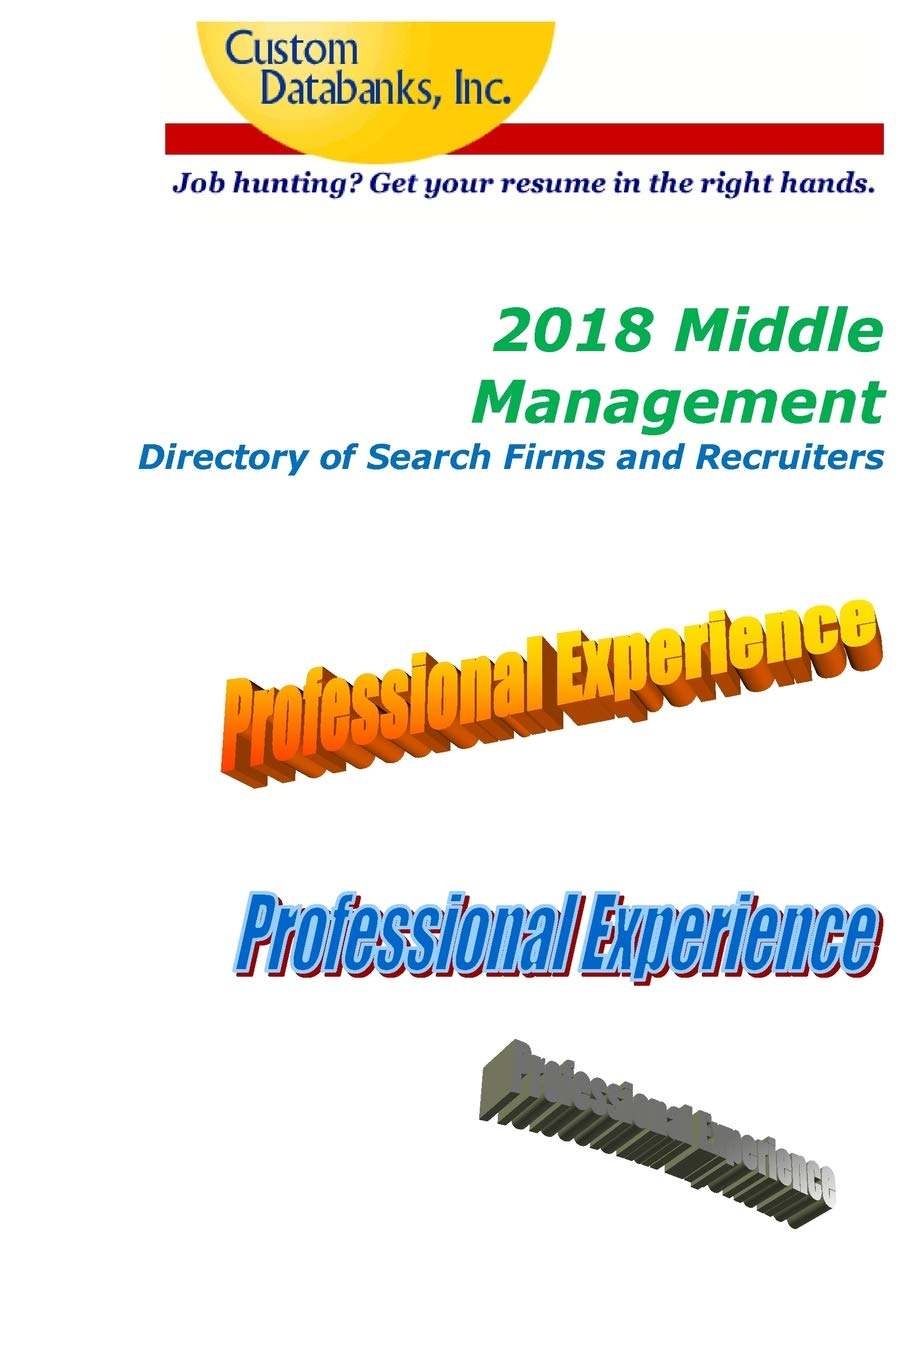 Amazon fr - 2018 Middle Management Directory of Search Firms